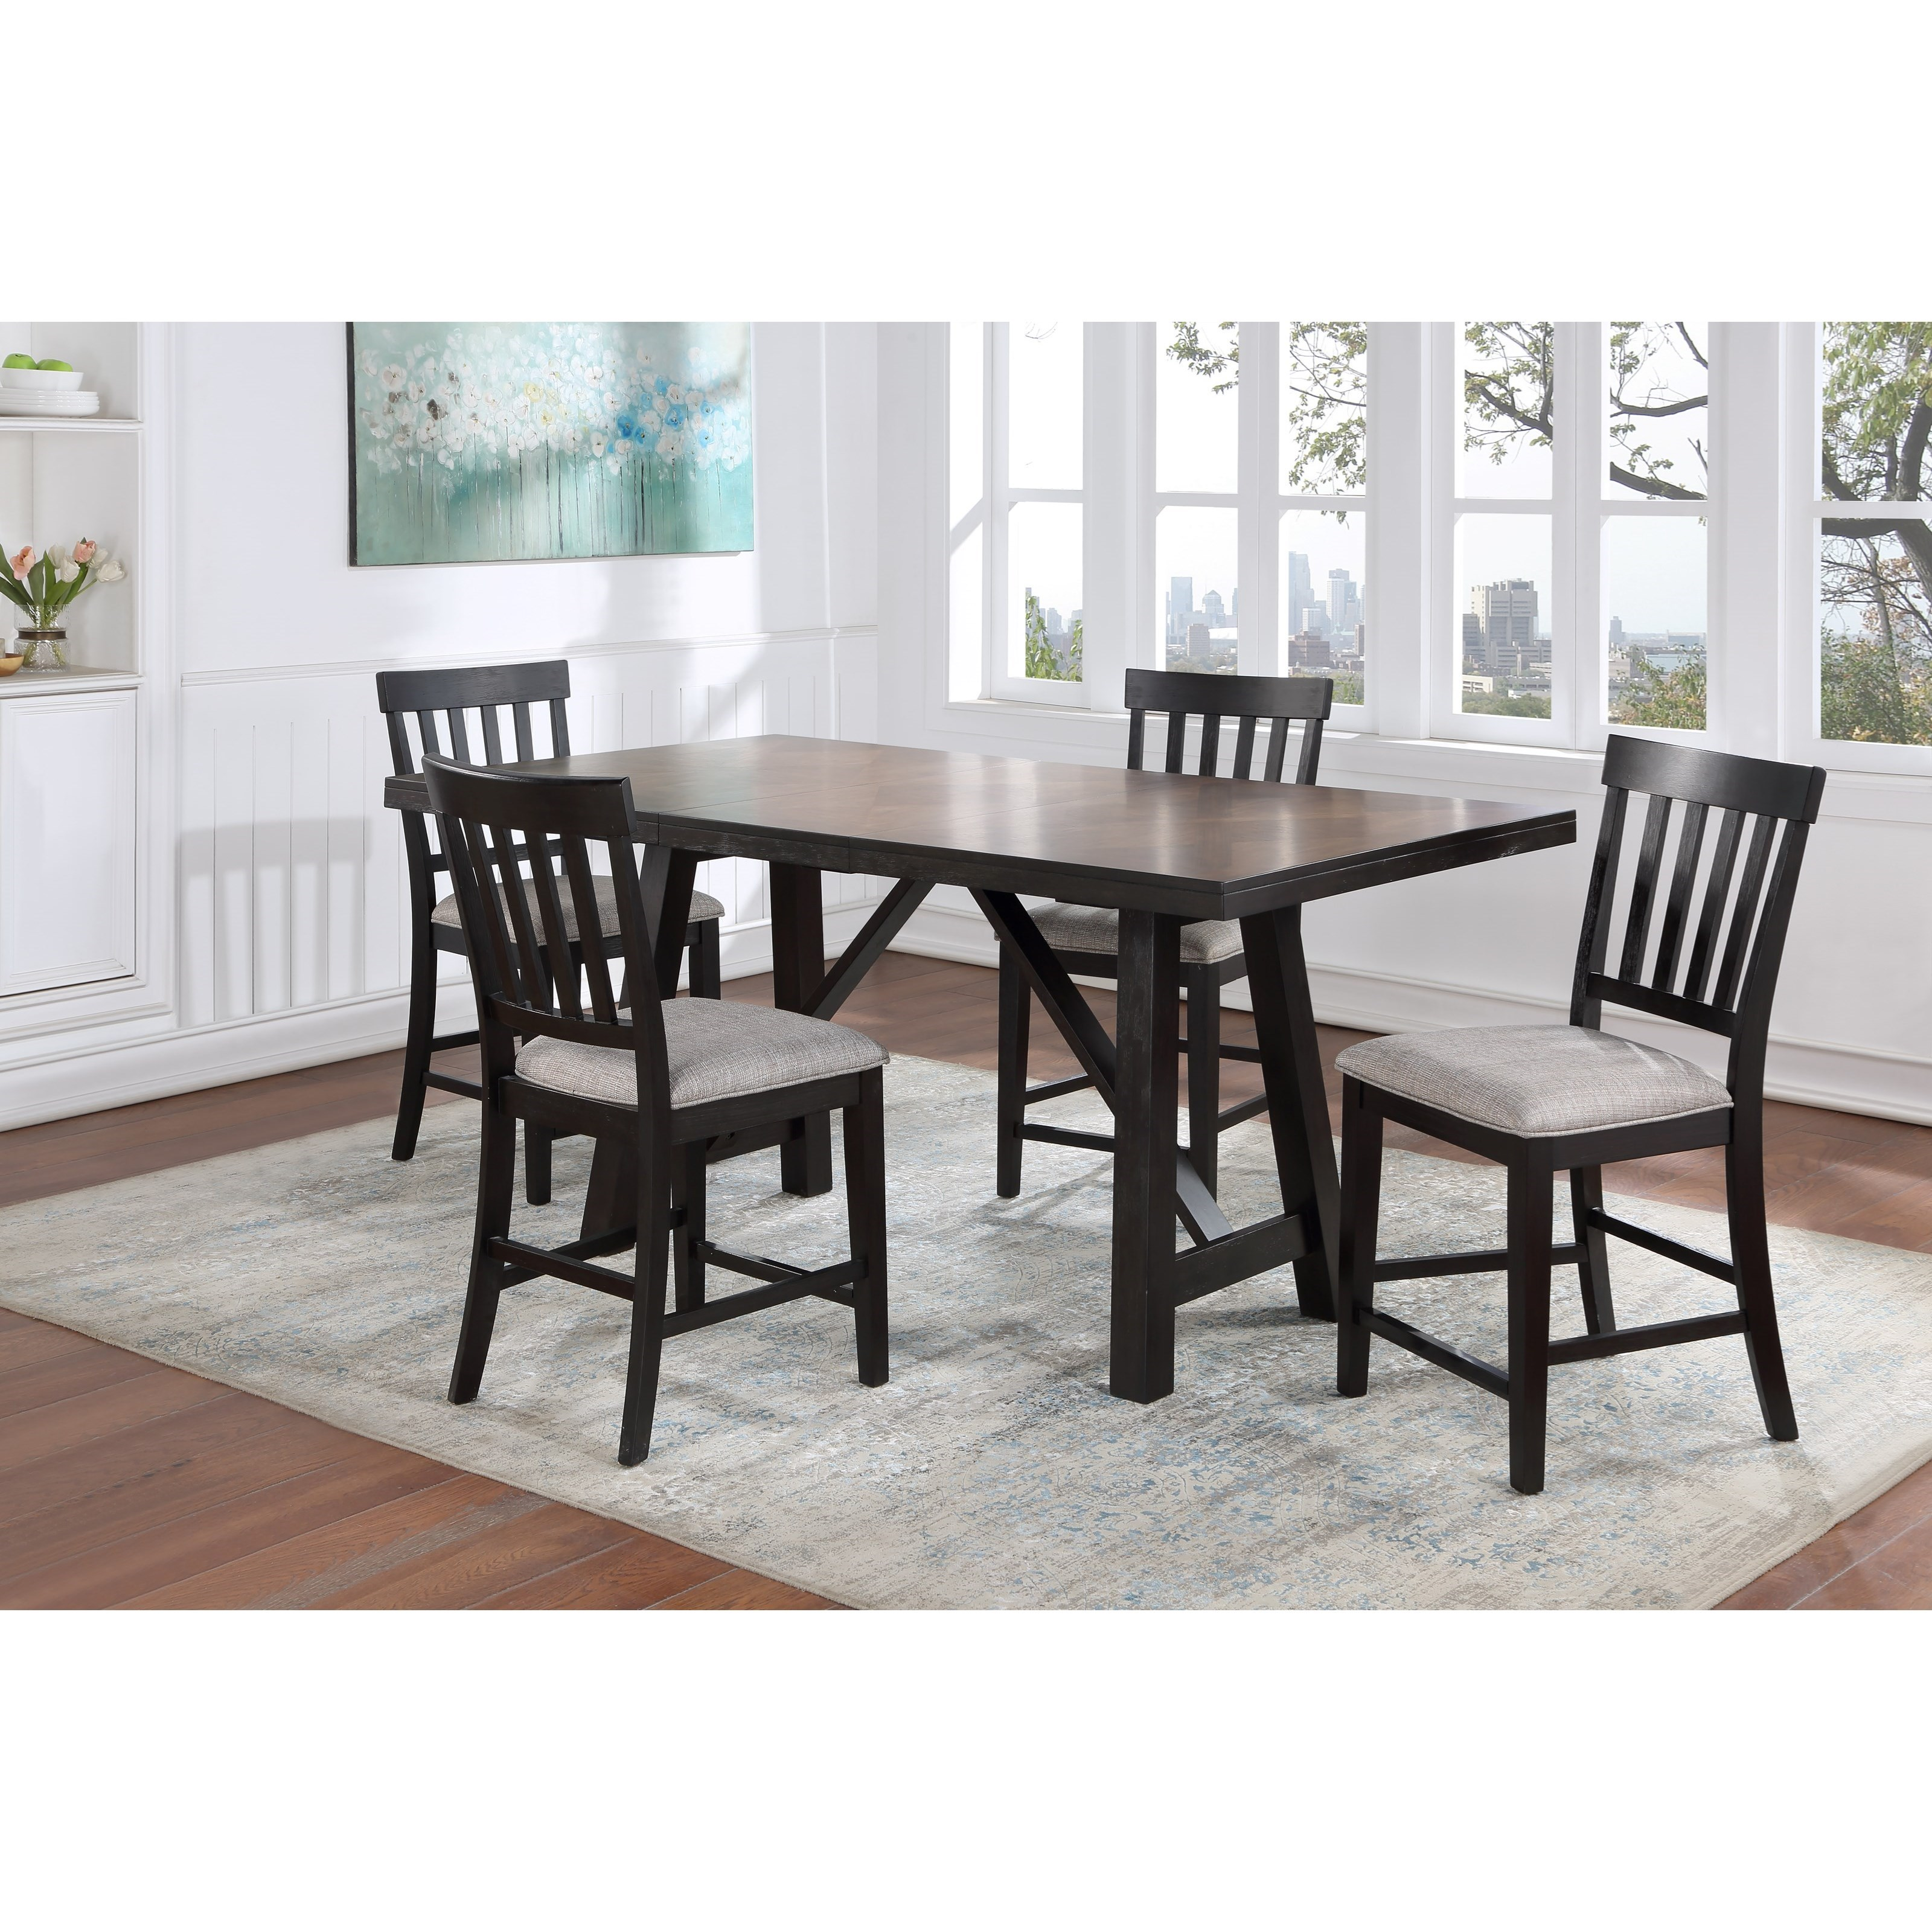 Halle 5-Piece Table and Chair Set by Steve Silver at Walker's Furniture